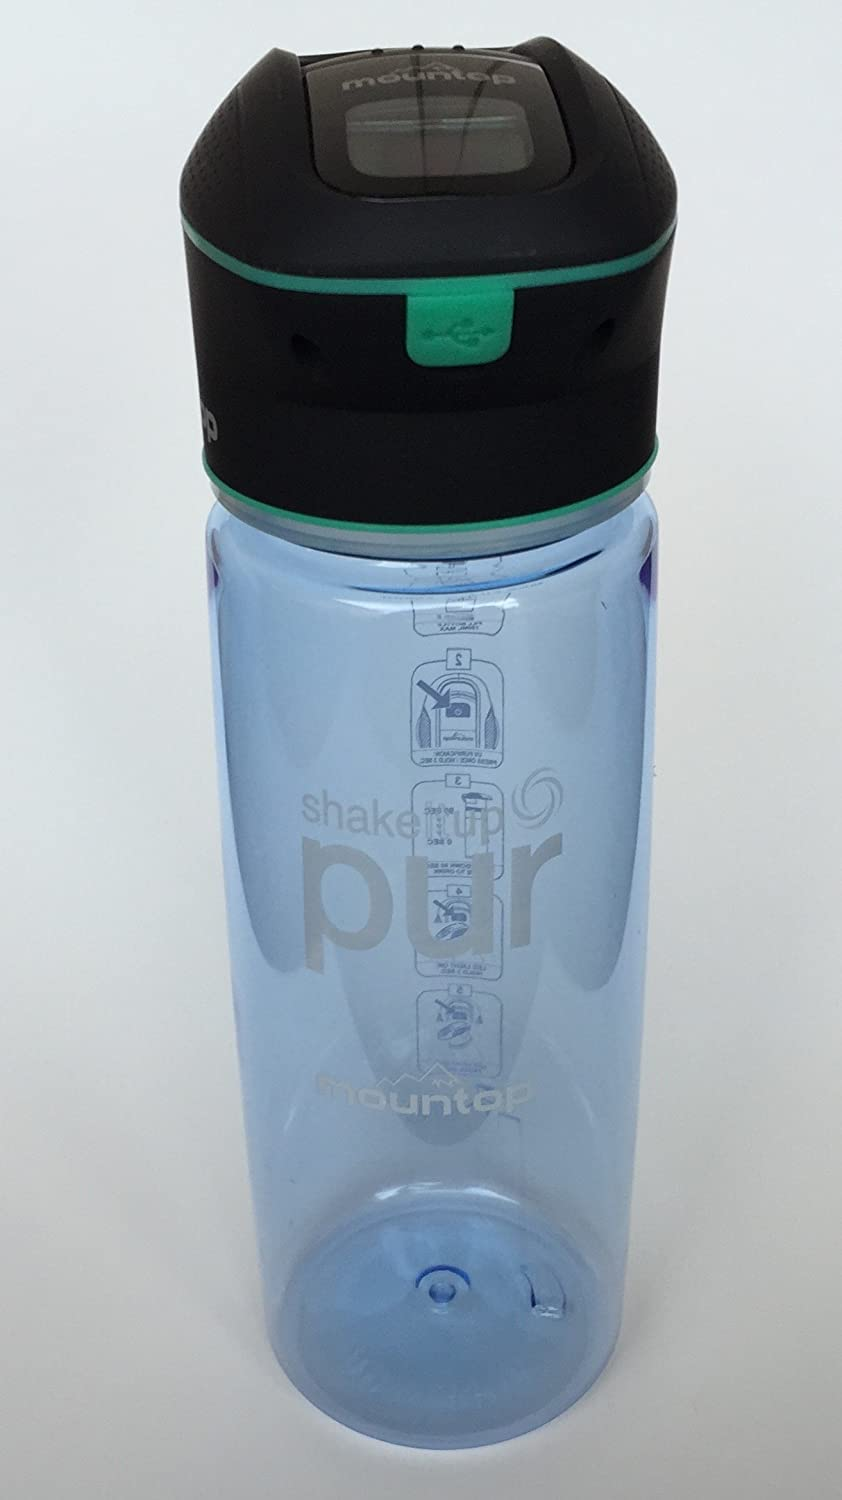 YouWanIt ShakeItUp PUR UV Purification Water Bottle, Portable 750 ML Bottle Purifier. UV Cap LED Display Sterilizes Water in 90 Seconds. Also a Cool Camp lamp.